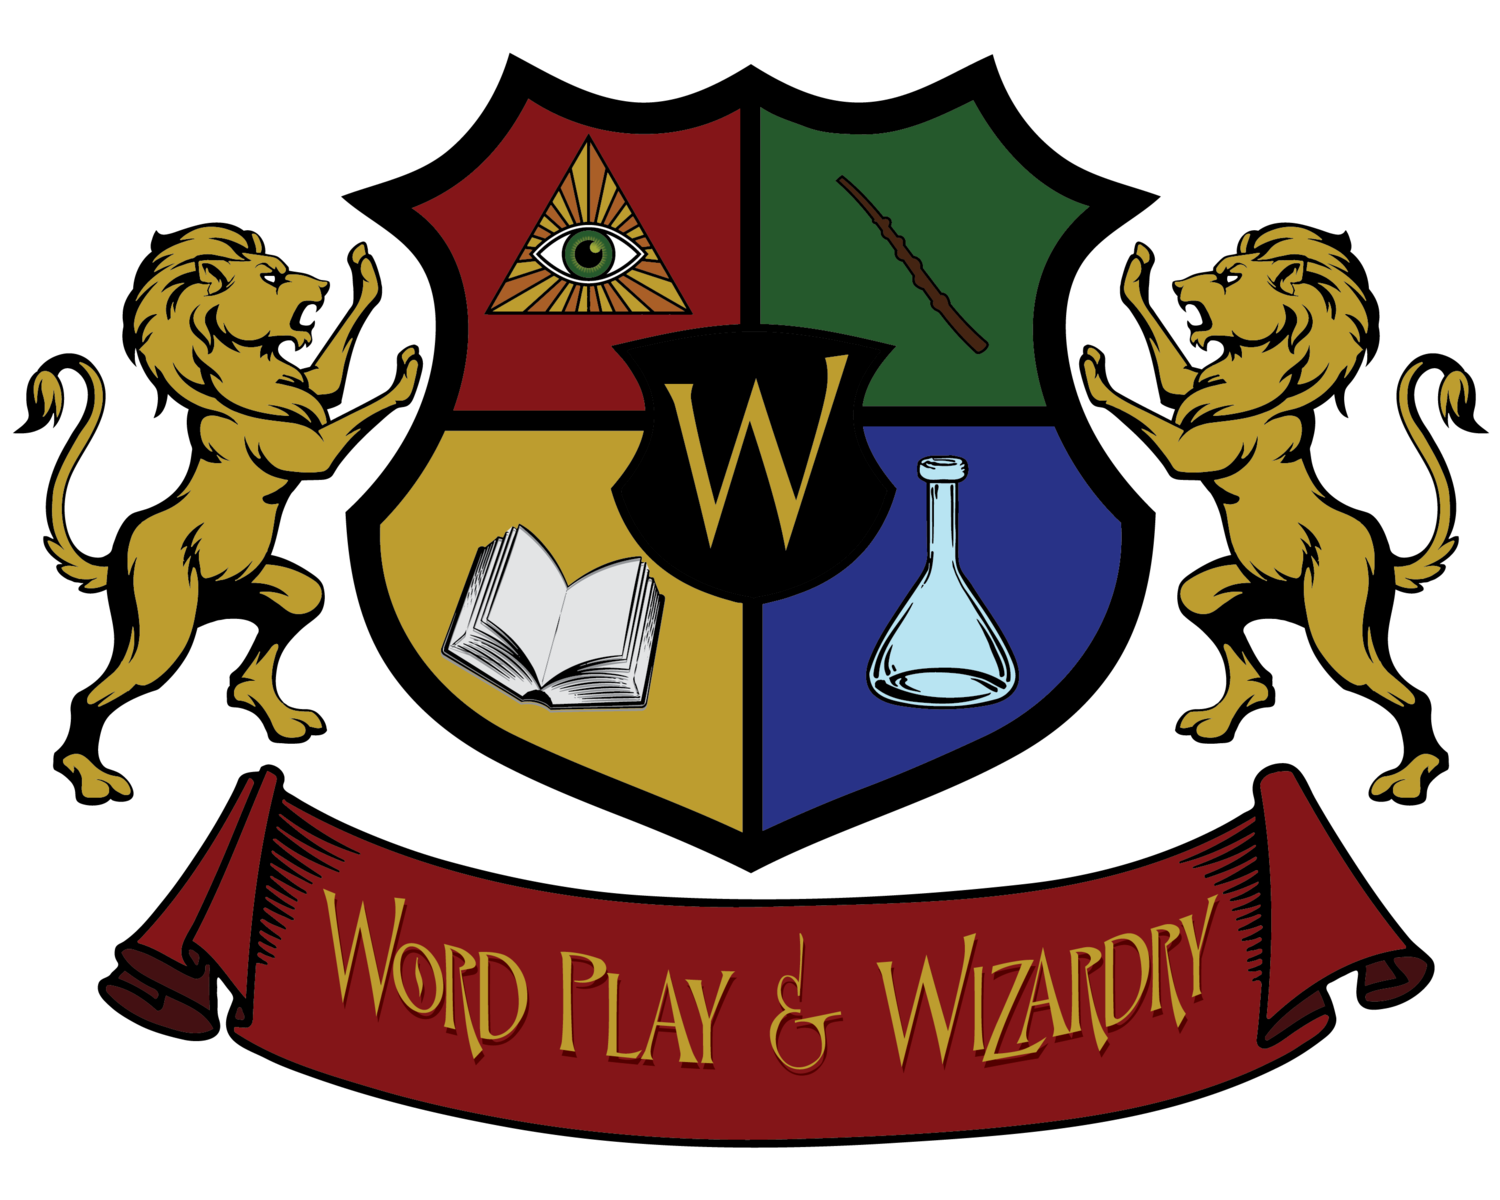 School of Word Play and Wizardry